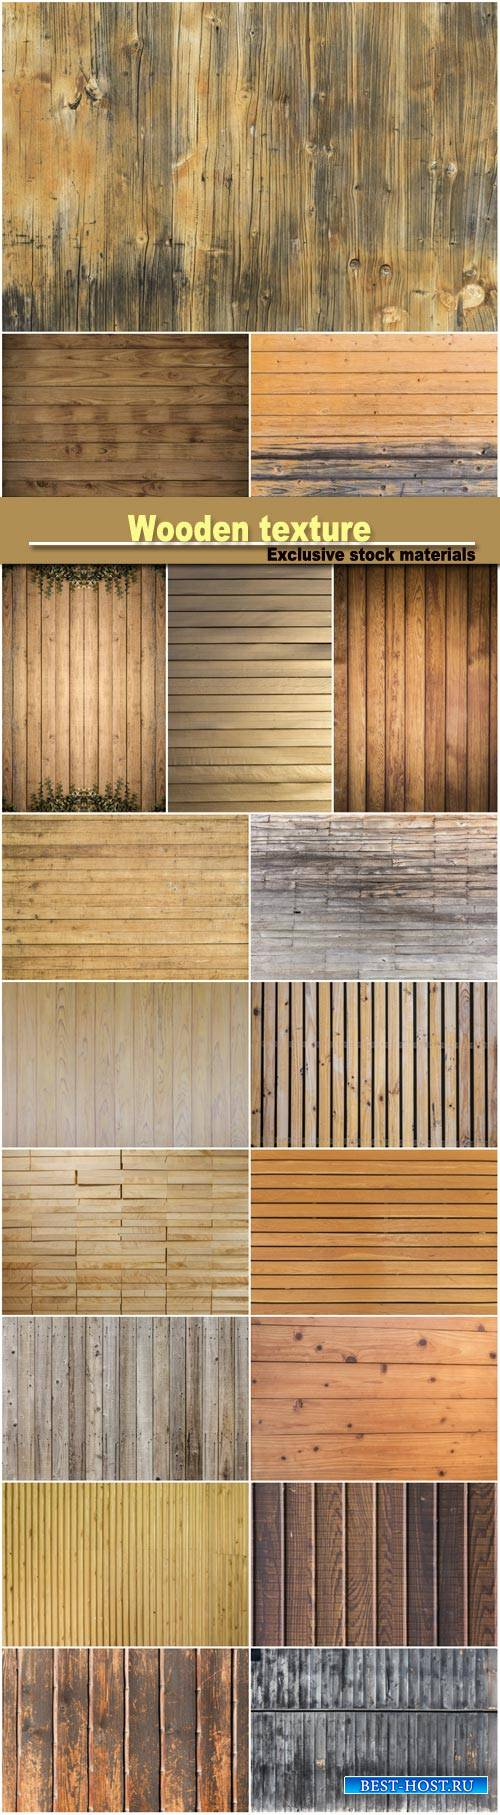 Wooden texture, background #4